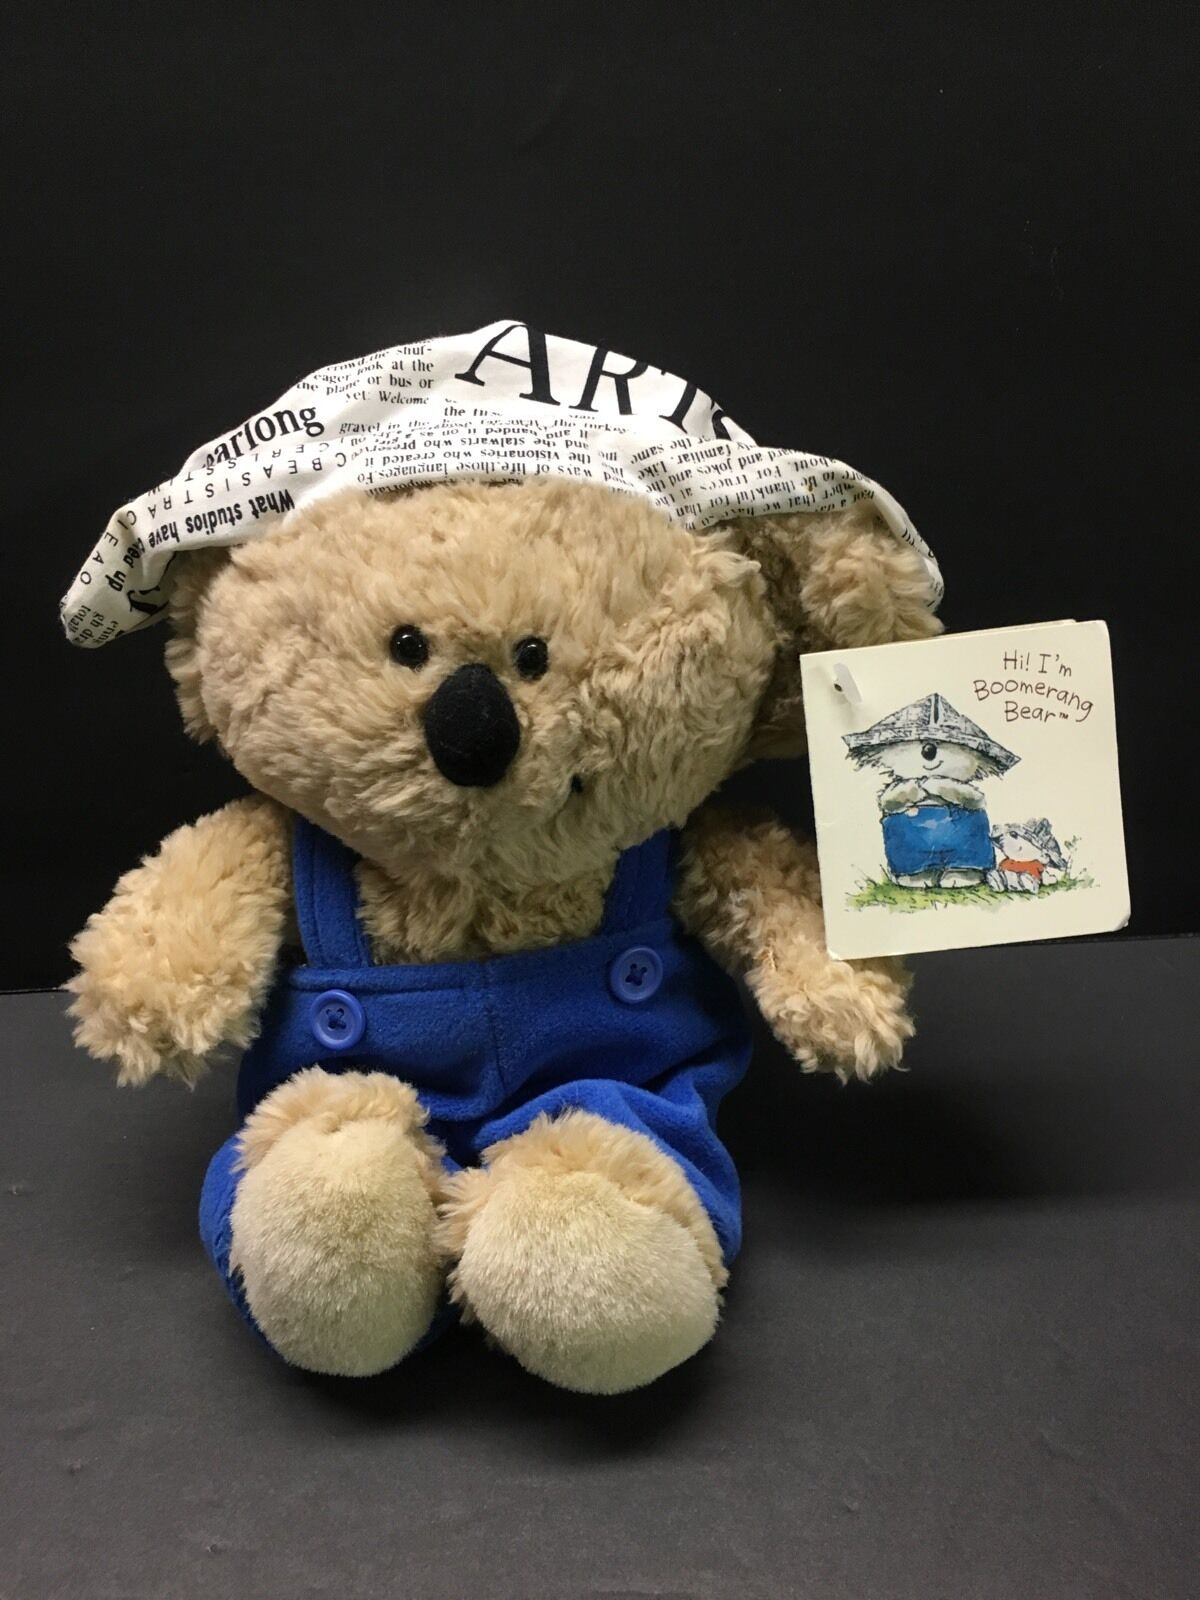 Boomerang Bear Koala Plush Doll American Greetings Cards Blue